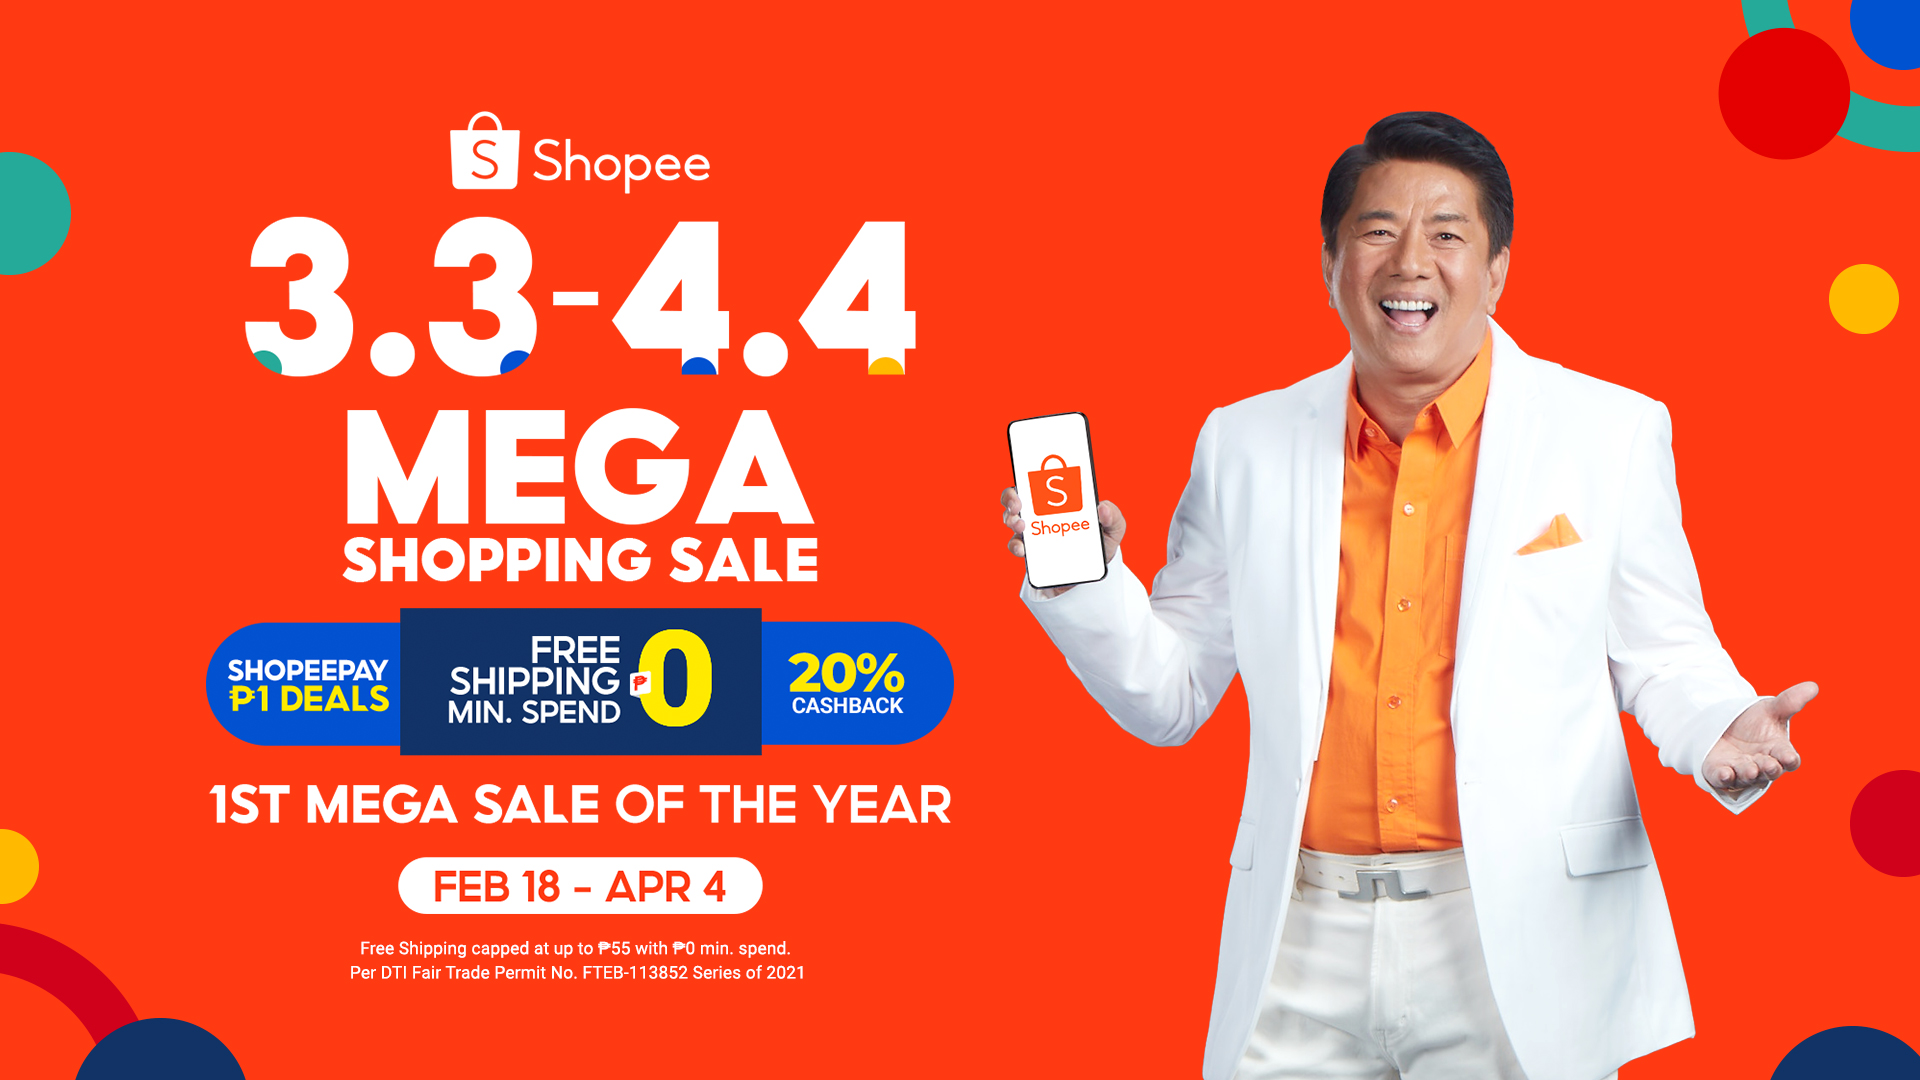 Shopee launches 3.3 – 4.4 Mega Shopping Sale and catch newest brand ambassador Willie Revillame on Shopee's TV specials